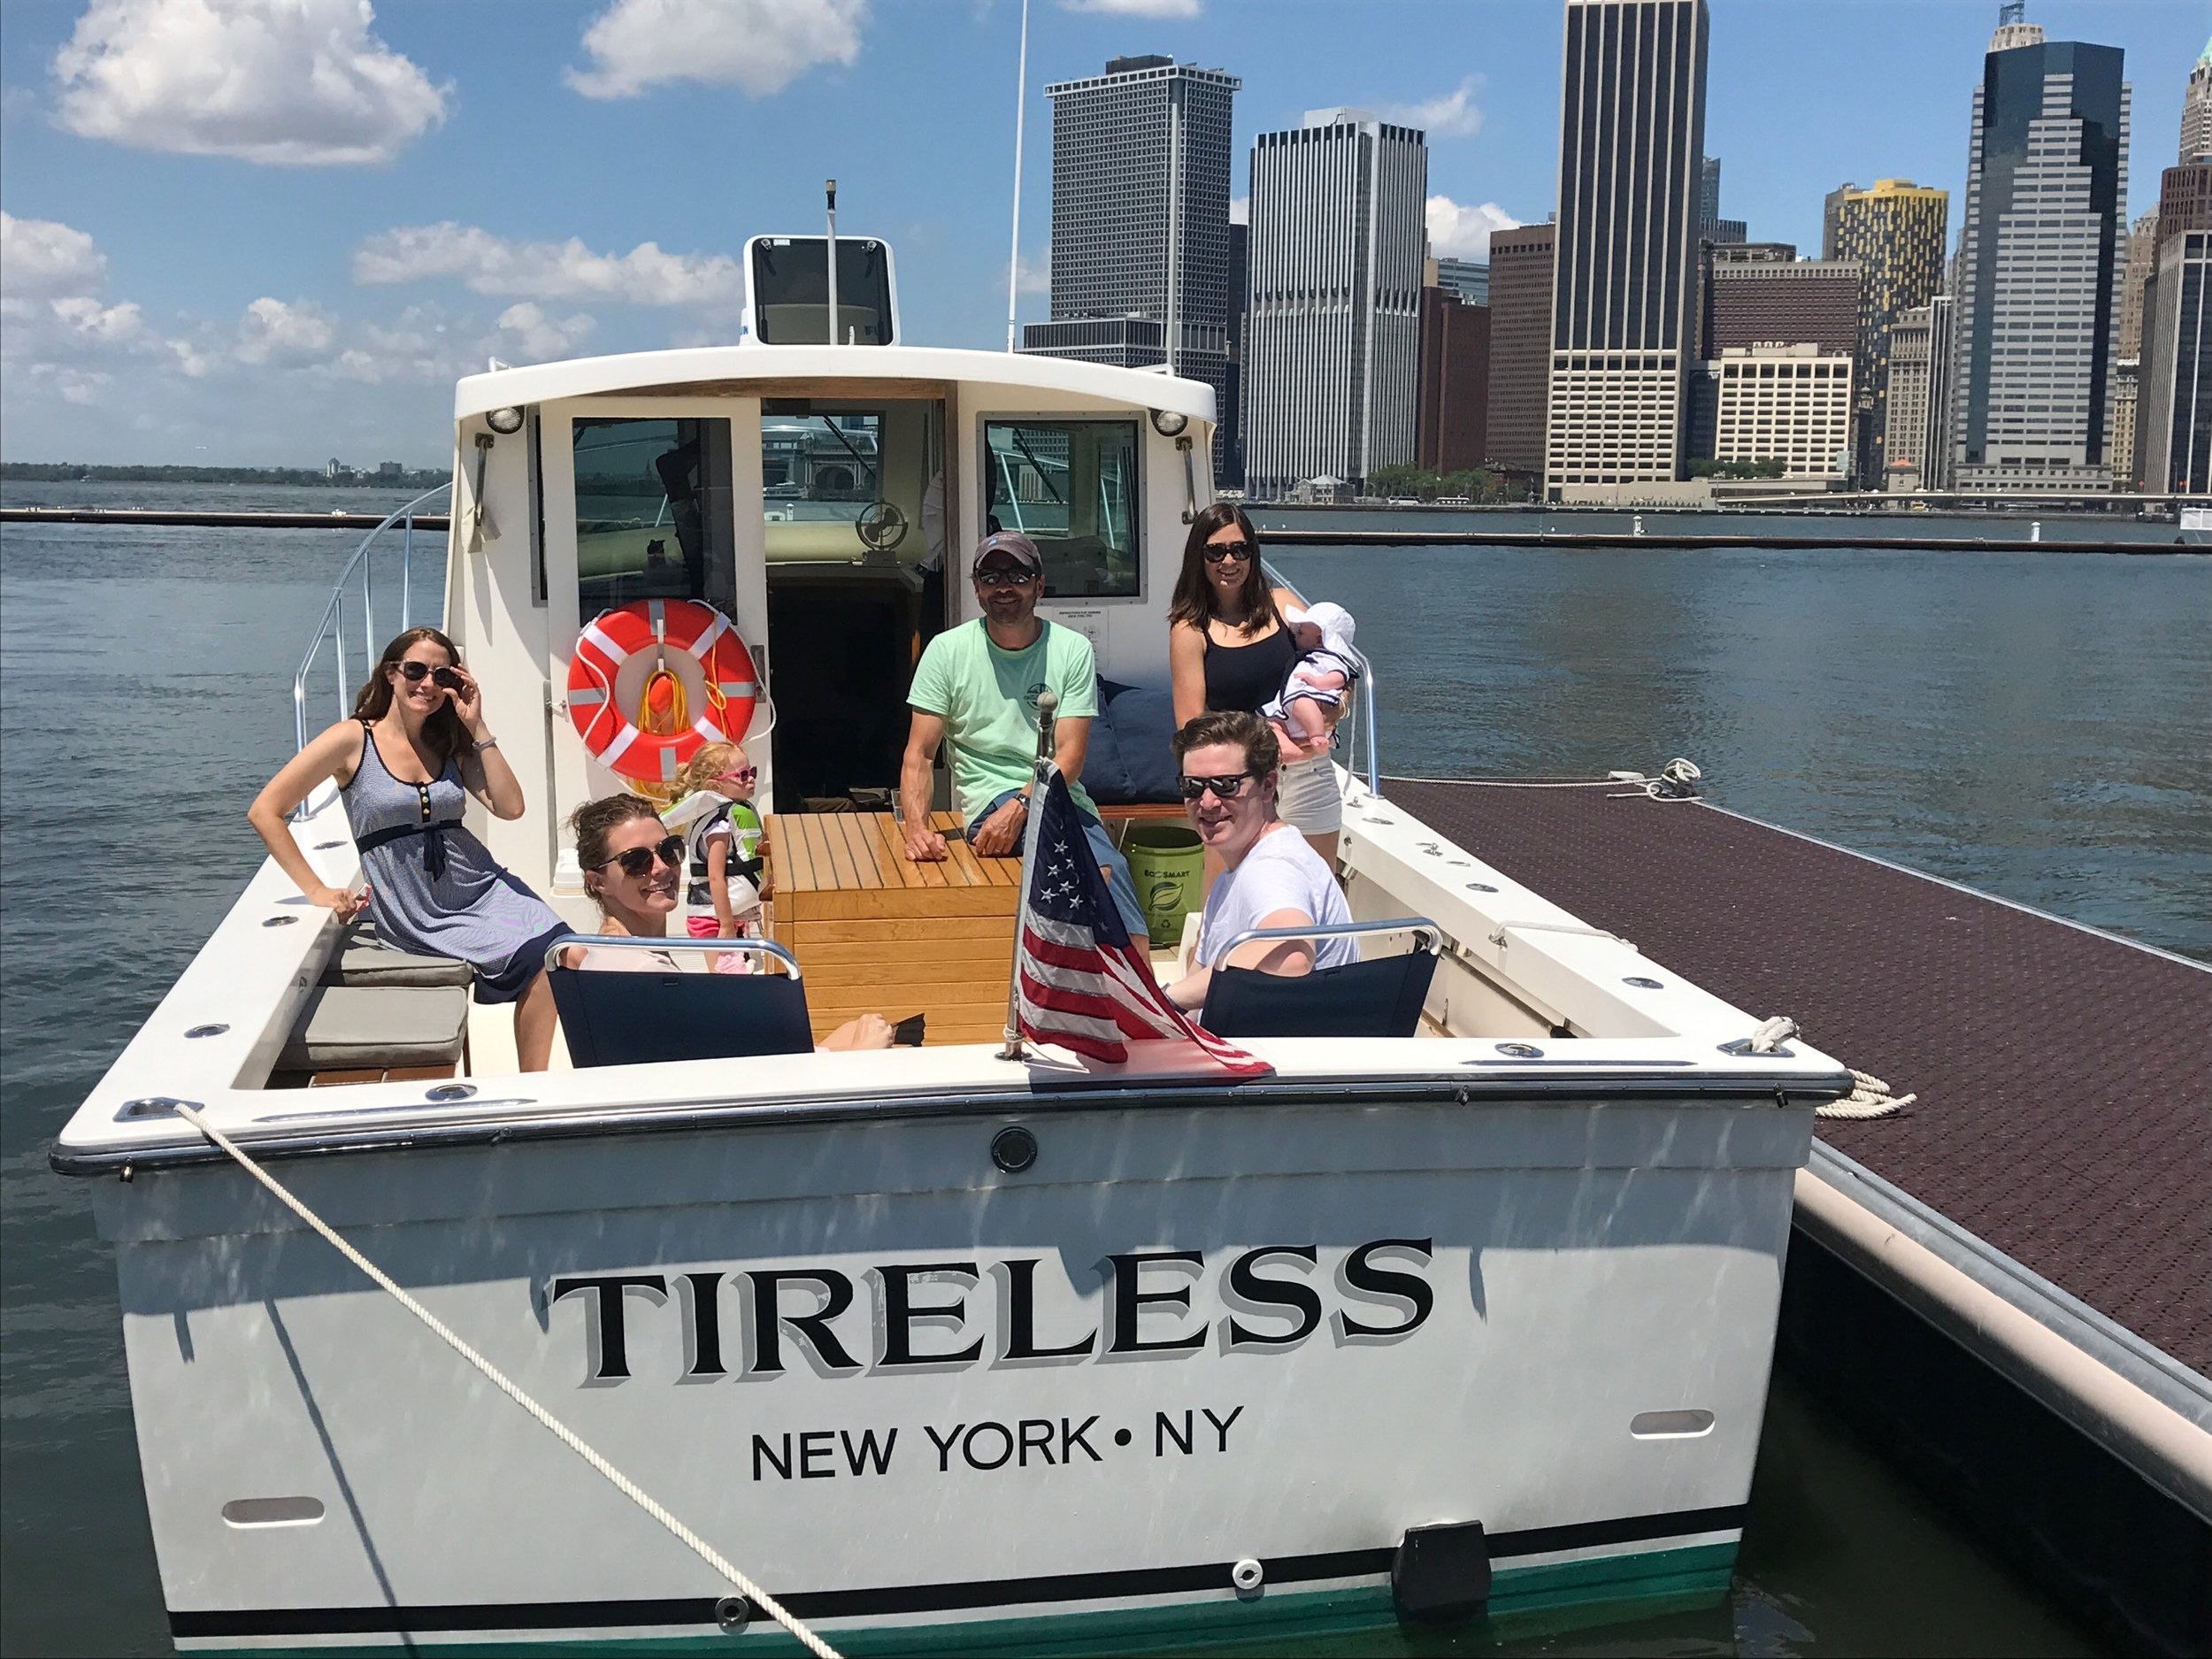 Our boat, Tireless